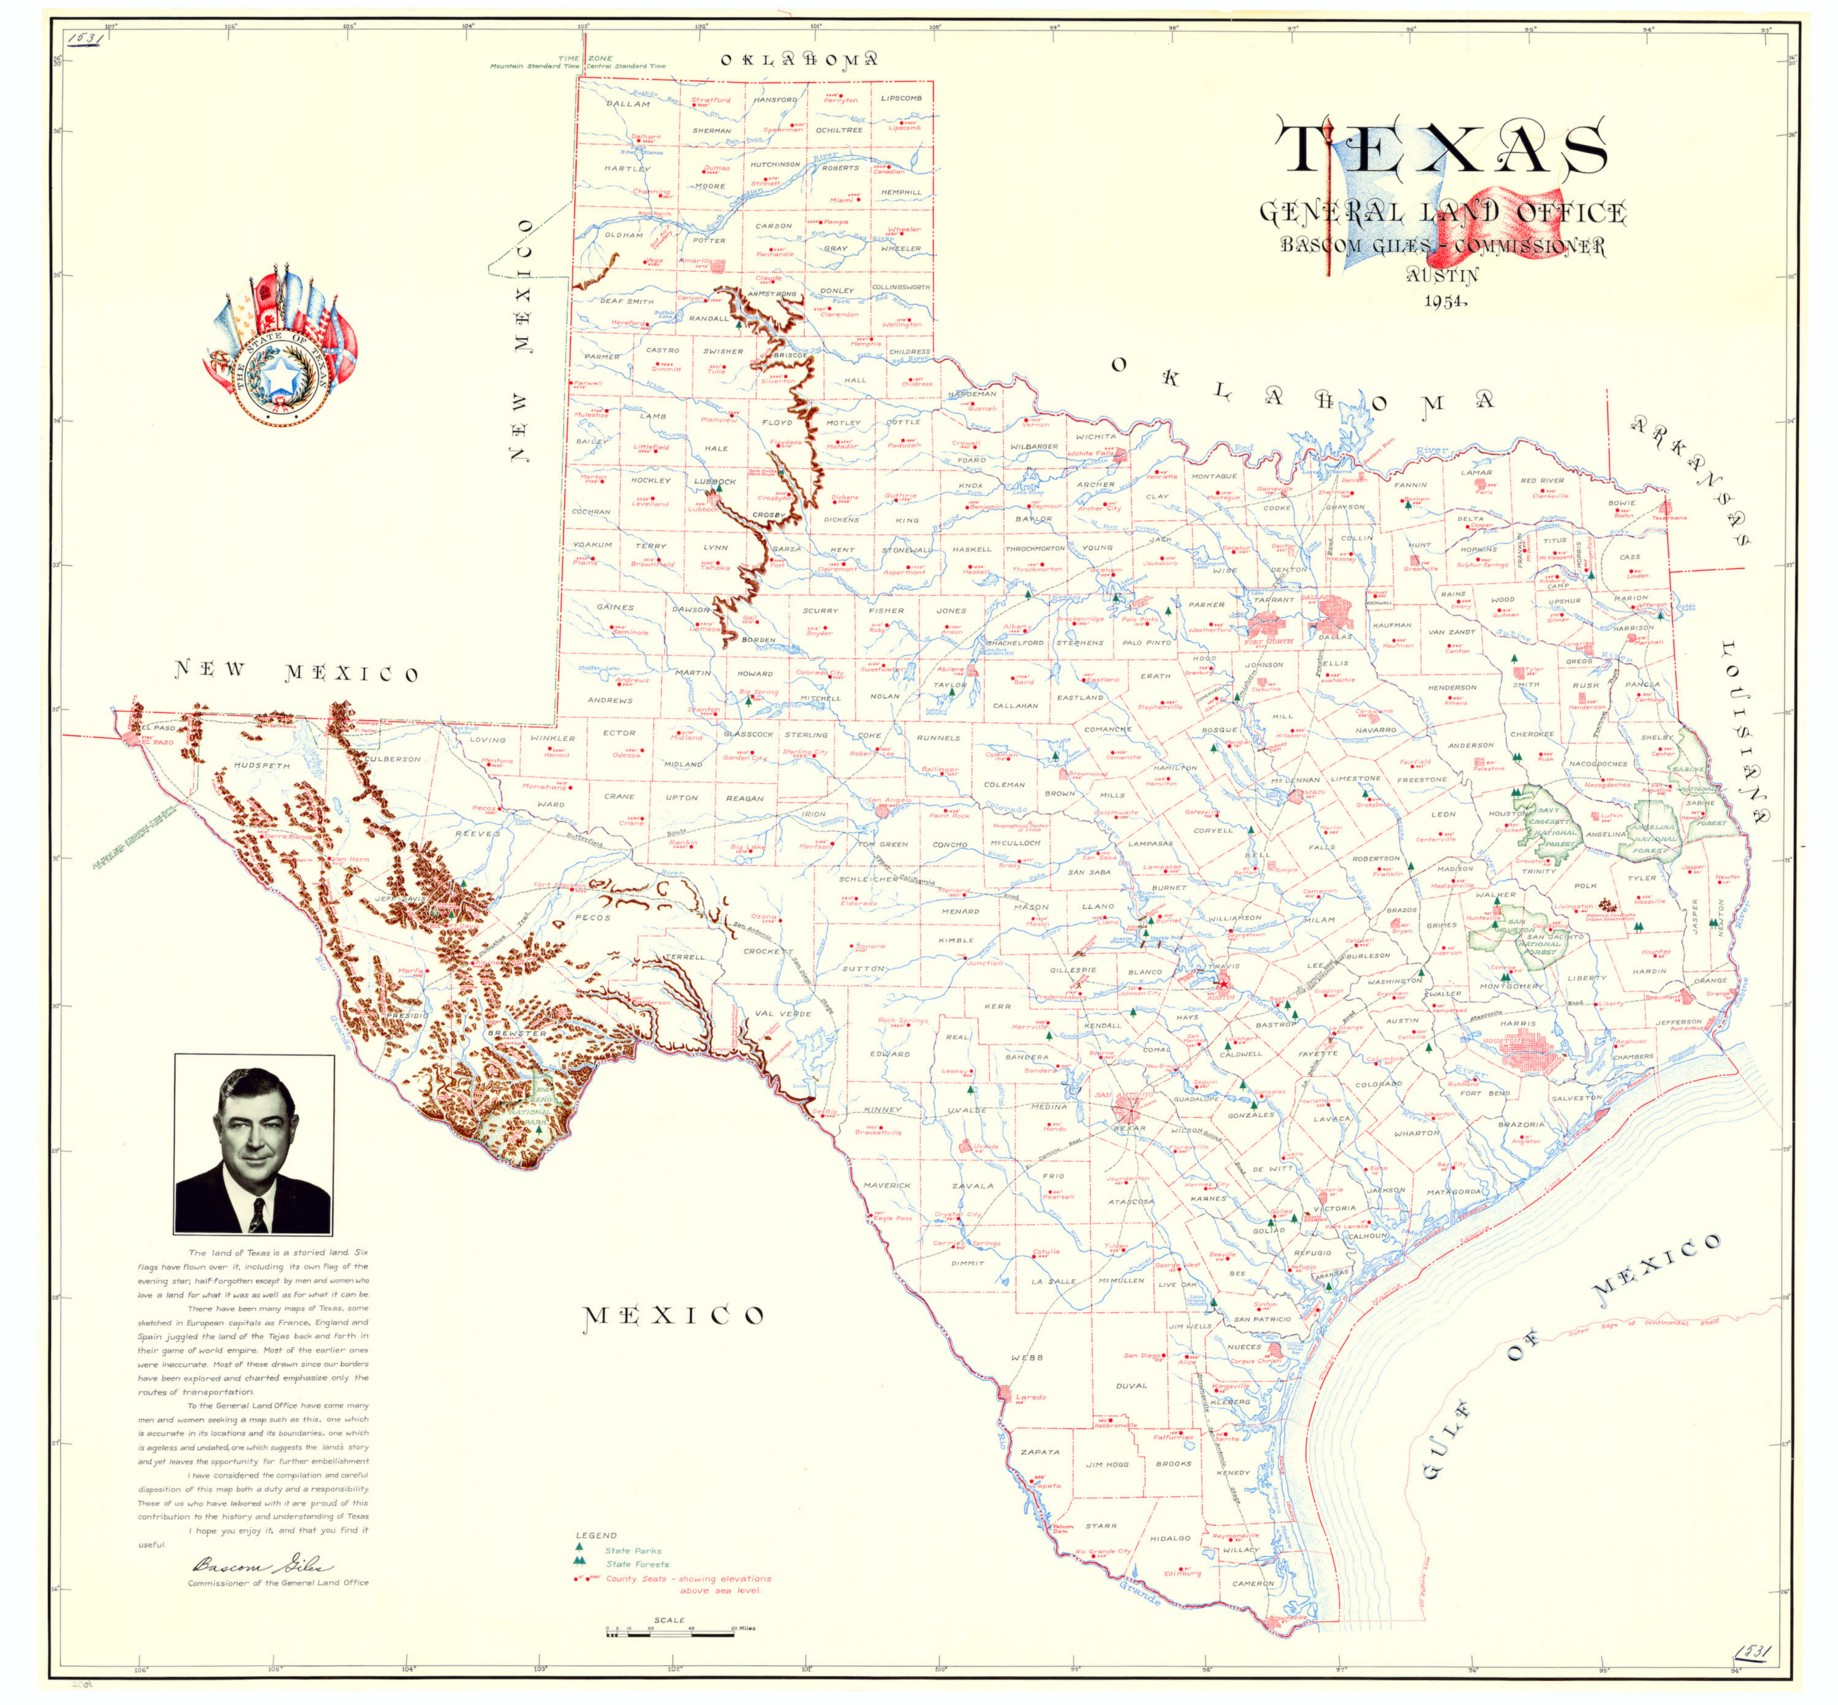 The Art of Eltea Armstrong, Part 2: Celebrating Texas